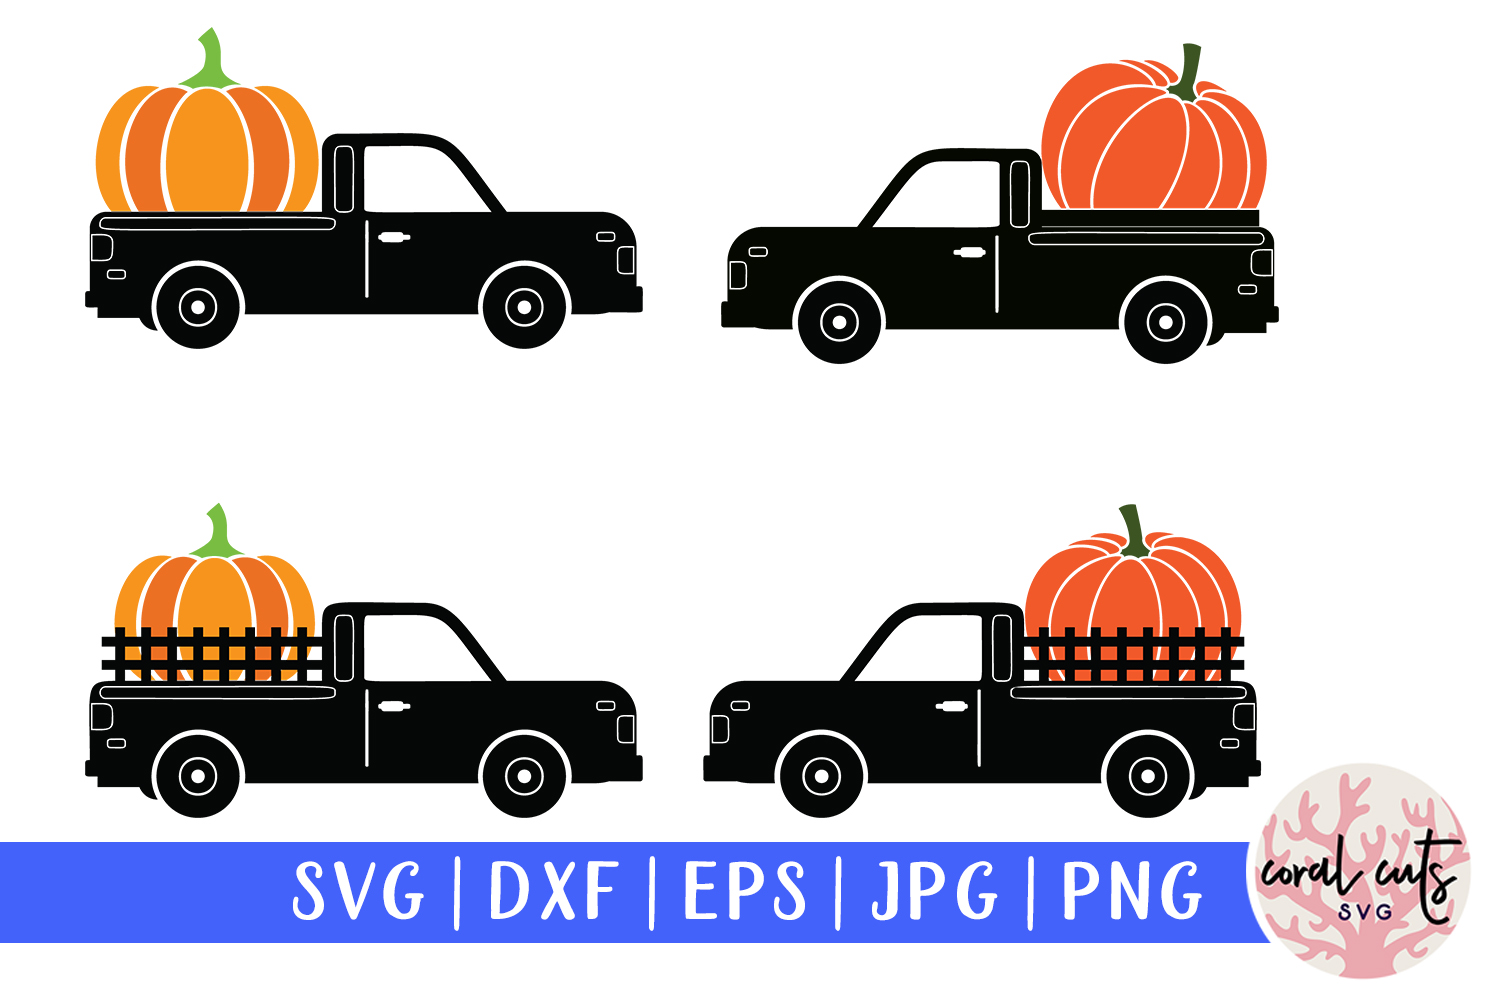 Download Free Pumpkin Truck Graphic By Coralcutssvg Creative Fabrica for Cricut Explore, Silhouette and other cutting machines.